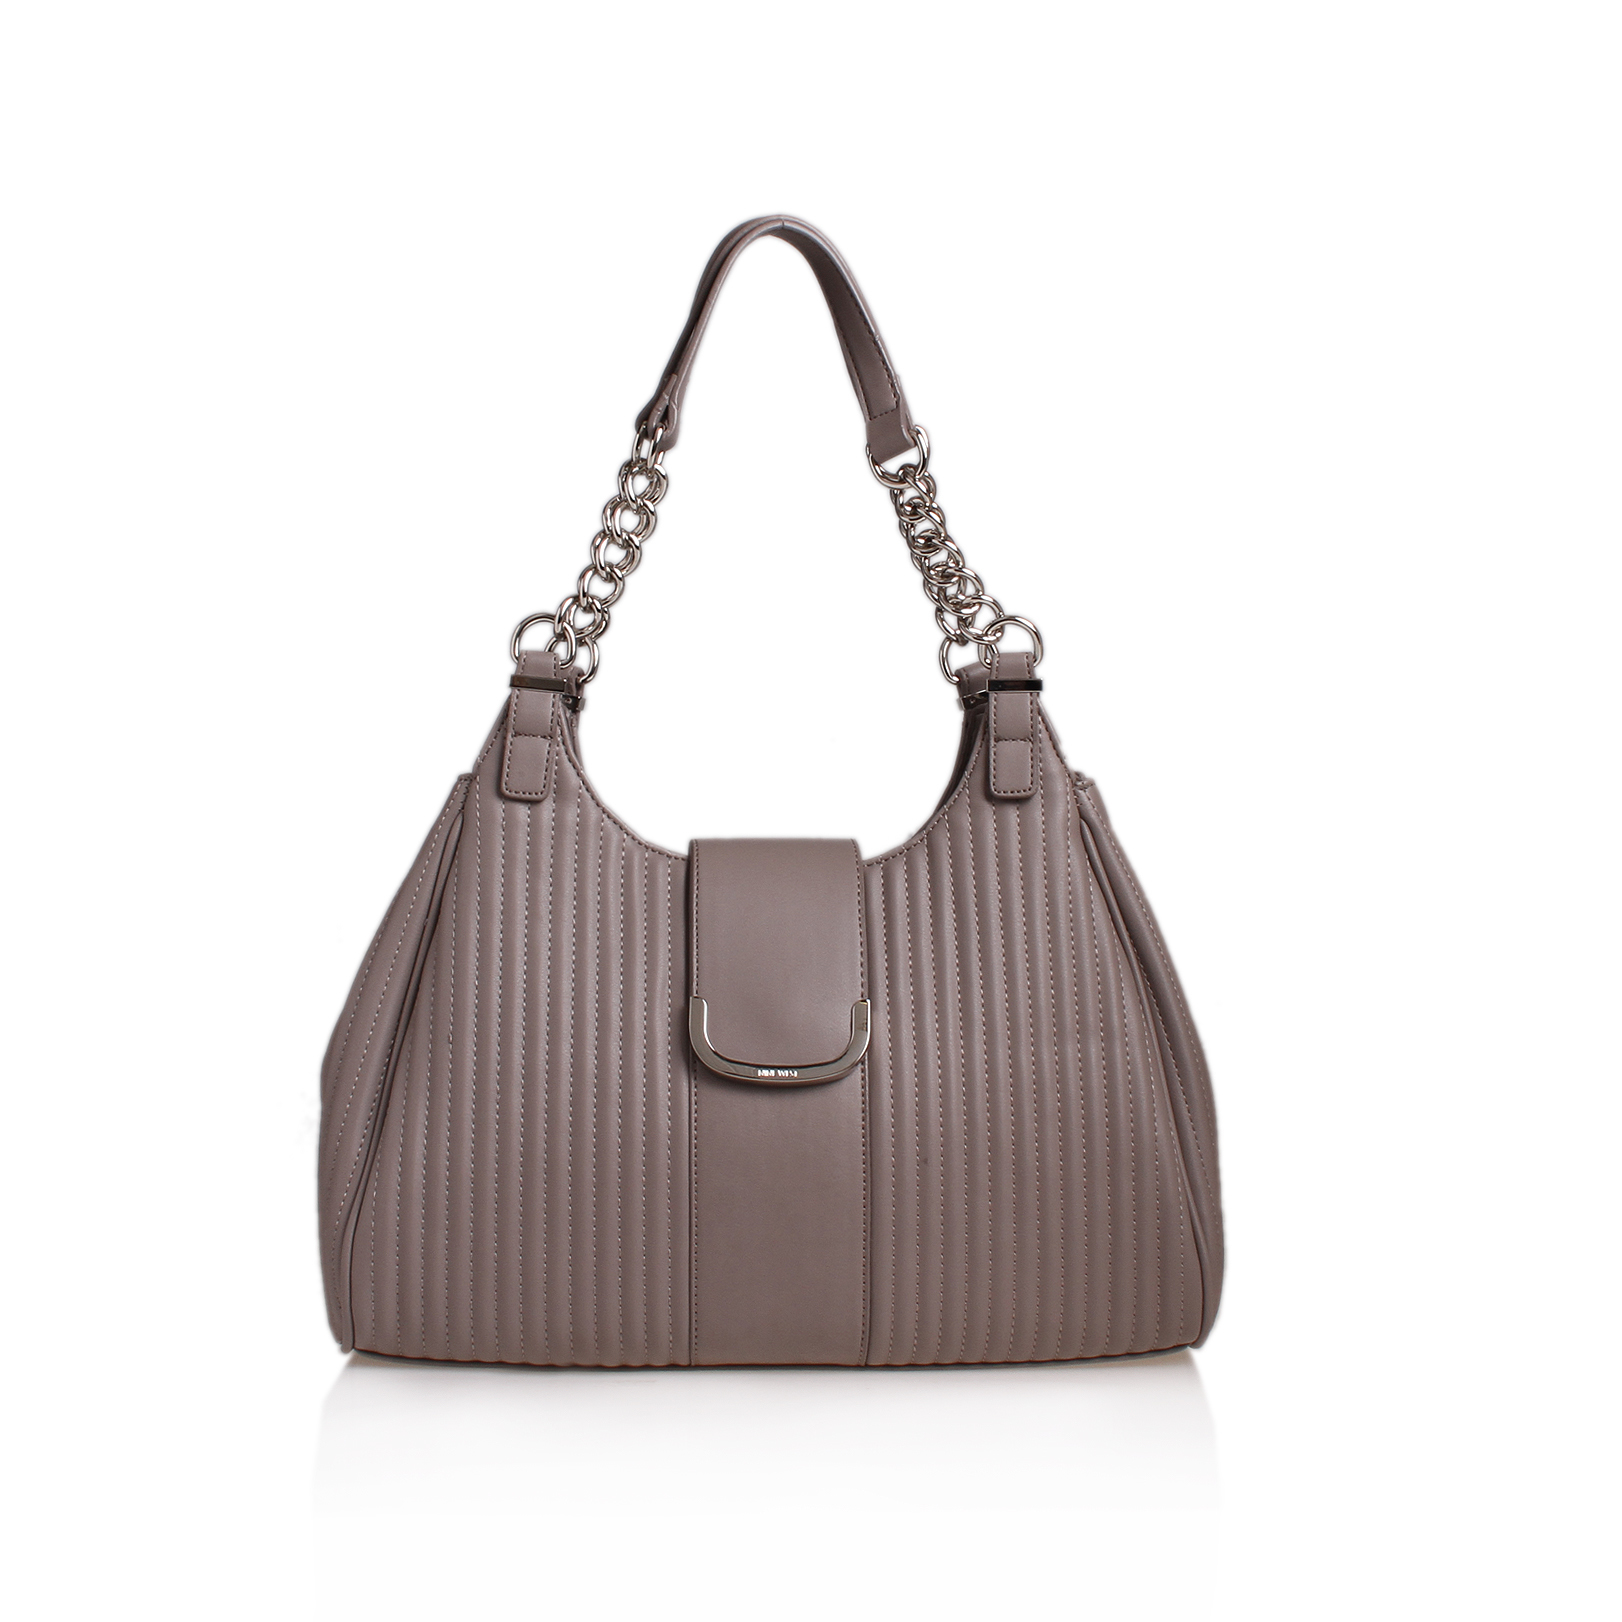 ROXANNA SHLDR BAG MD